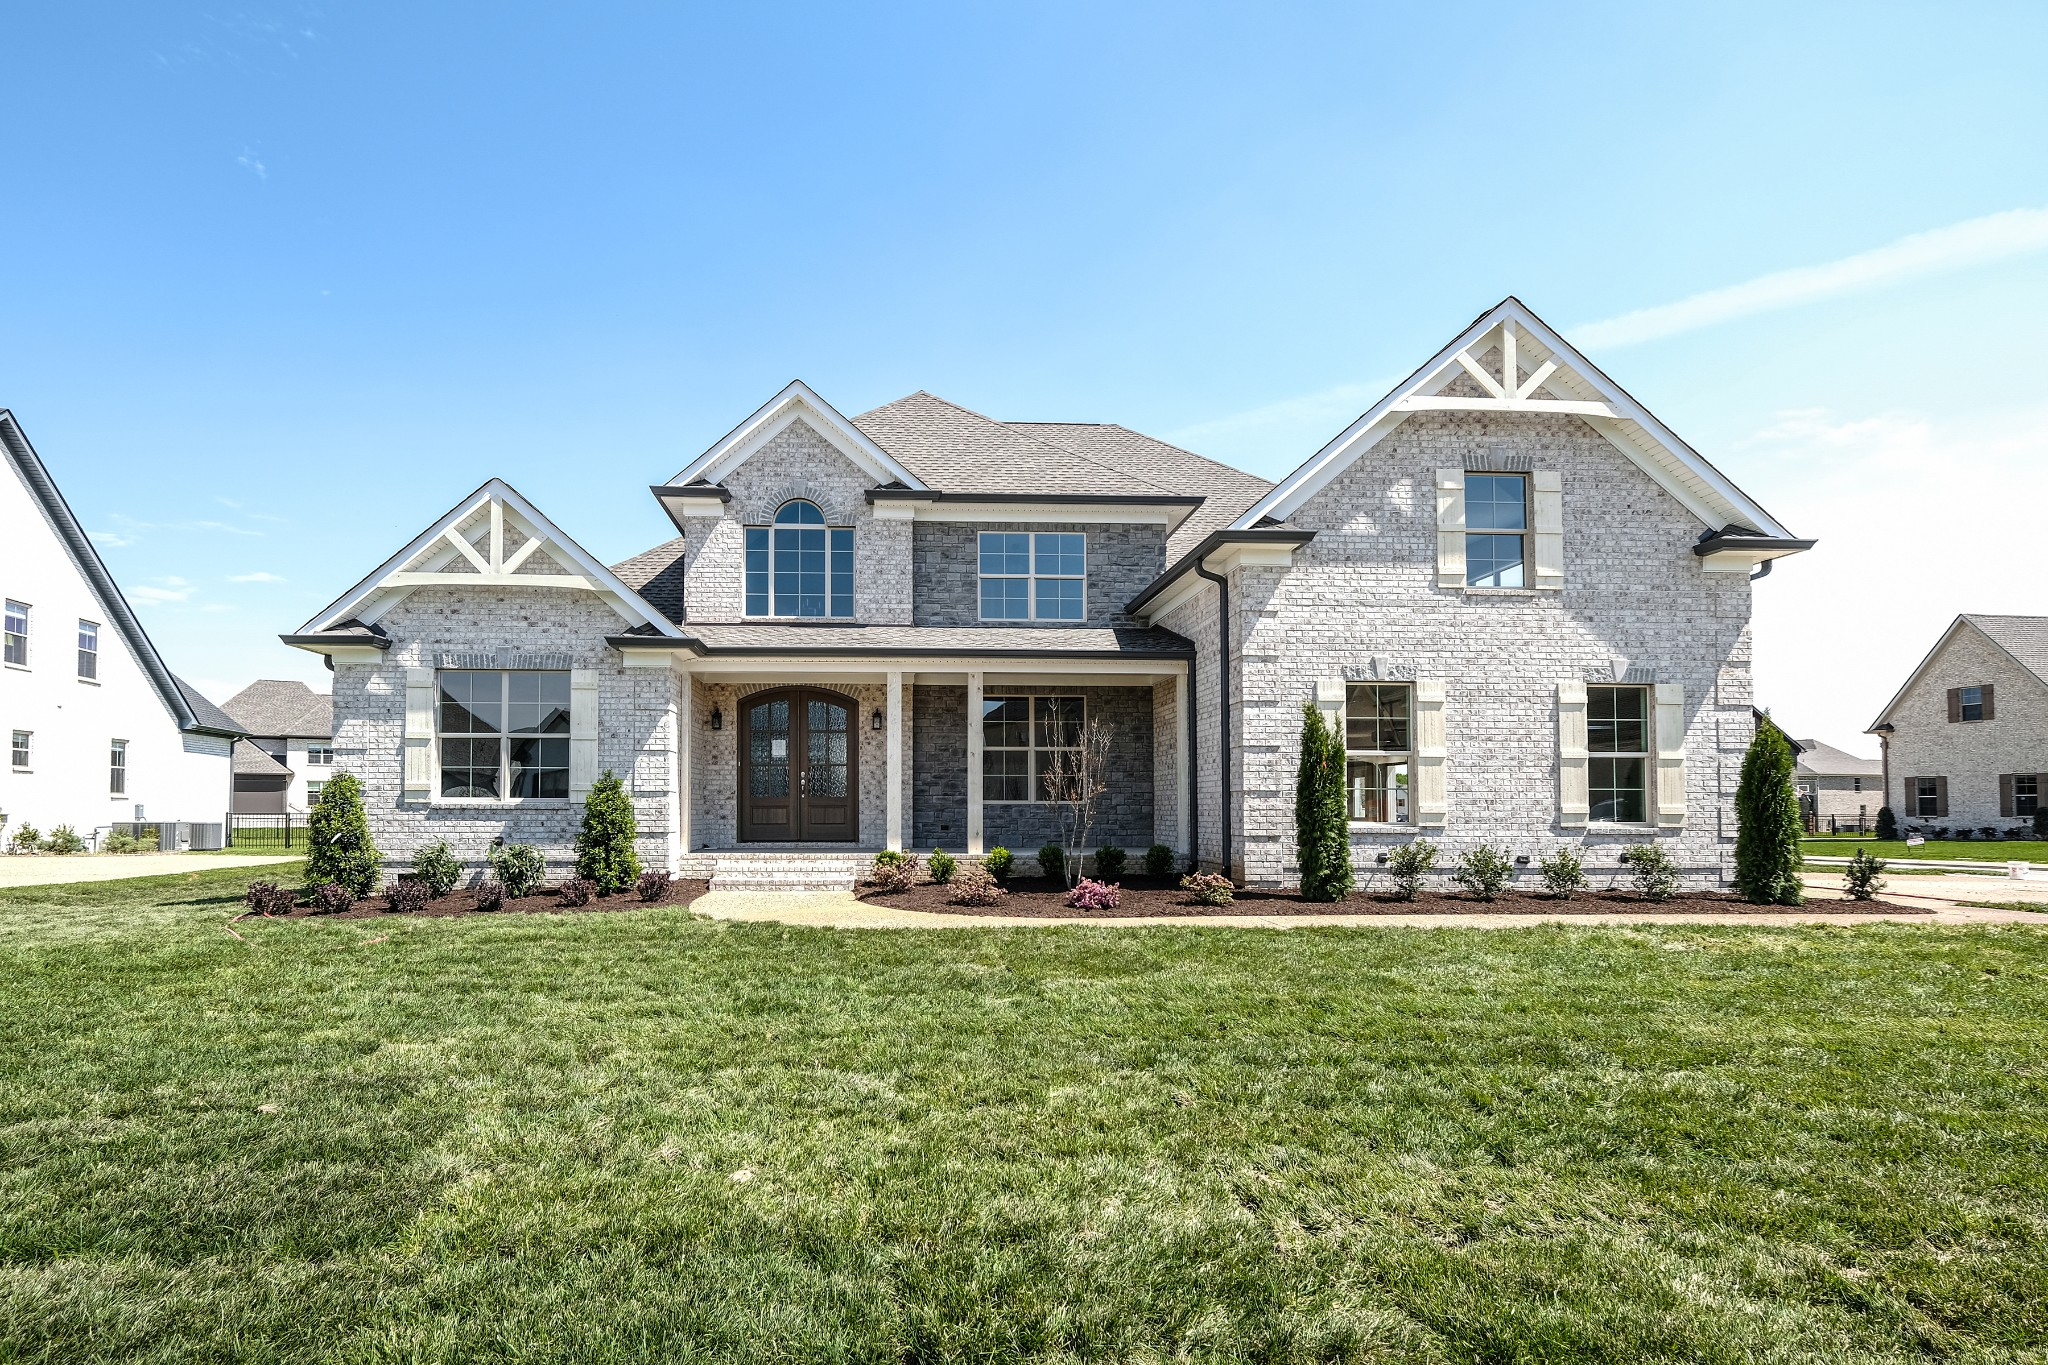 6025 Trout Ln (Lot 257), one of homes for sale in Spring Hill